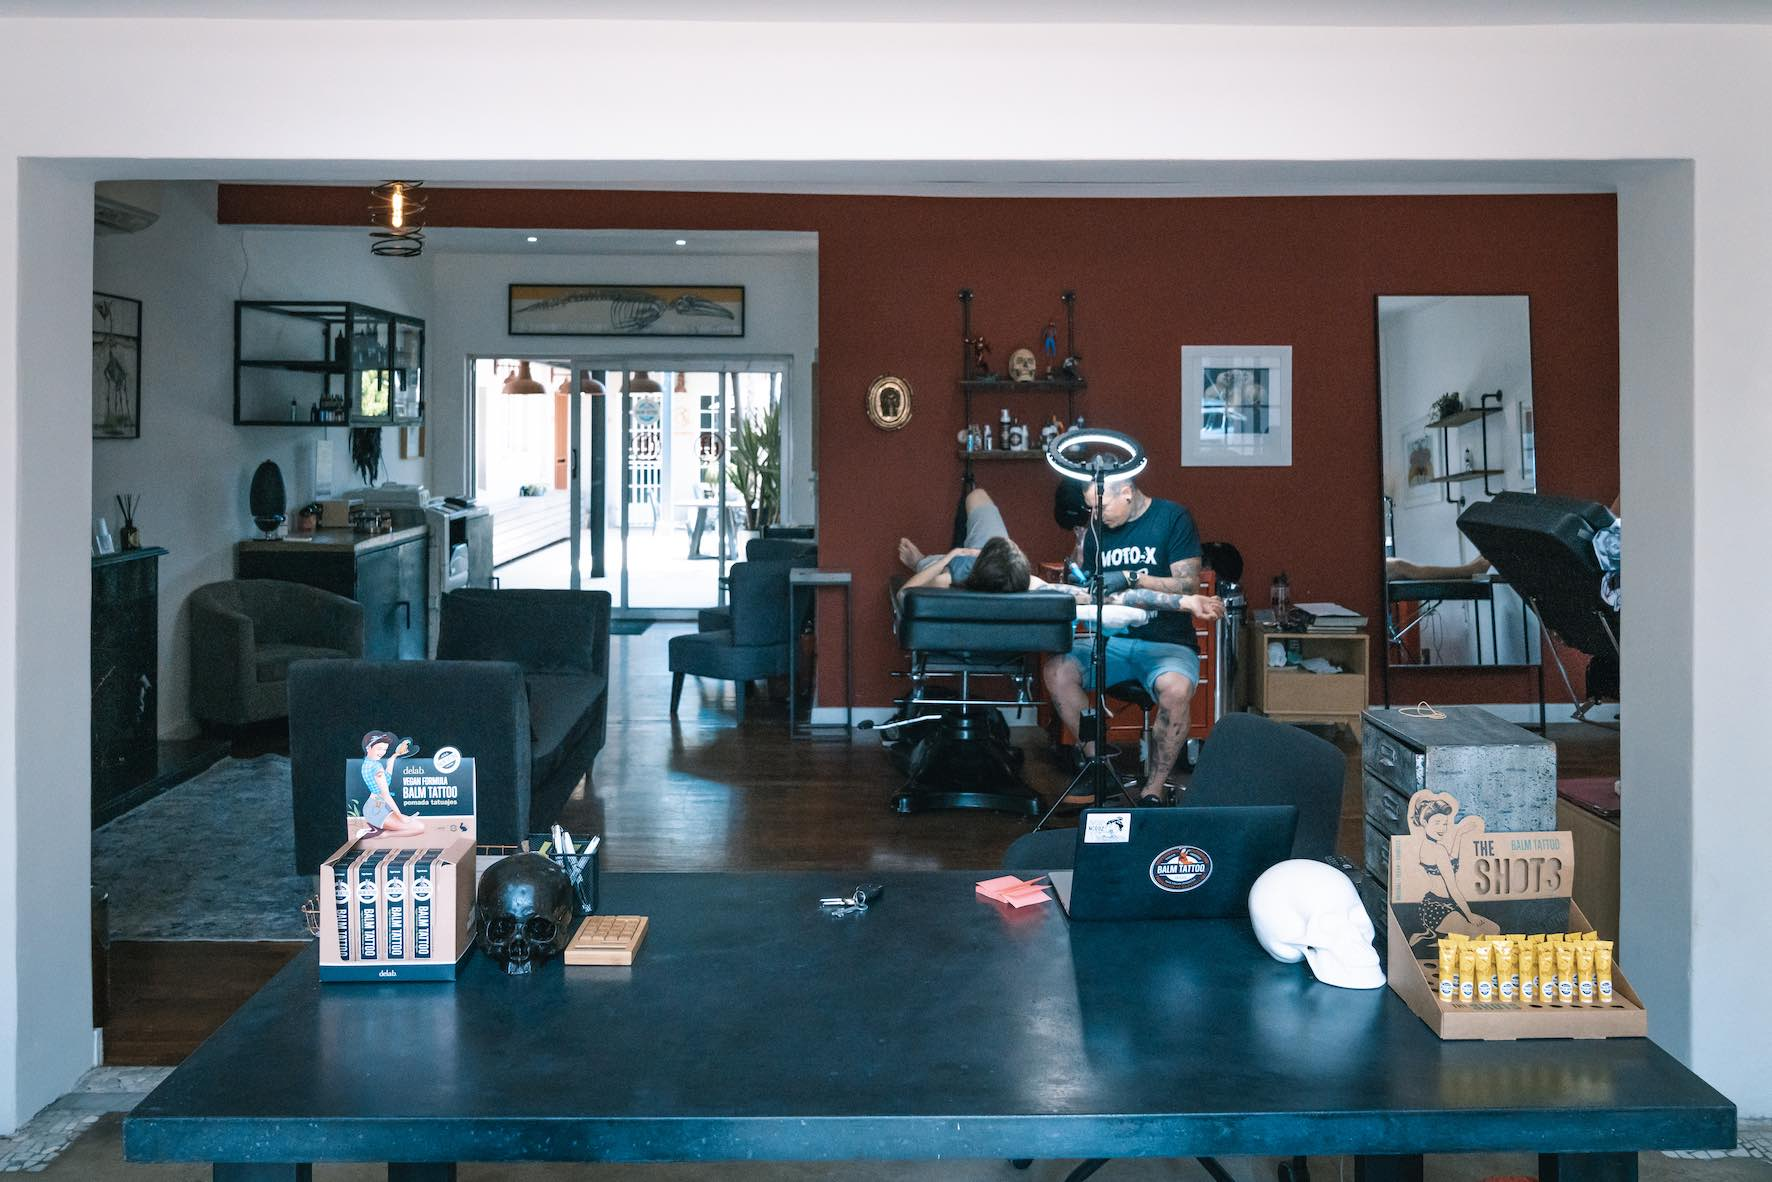 Fallen Heroes Tattoos has moved to their new space